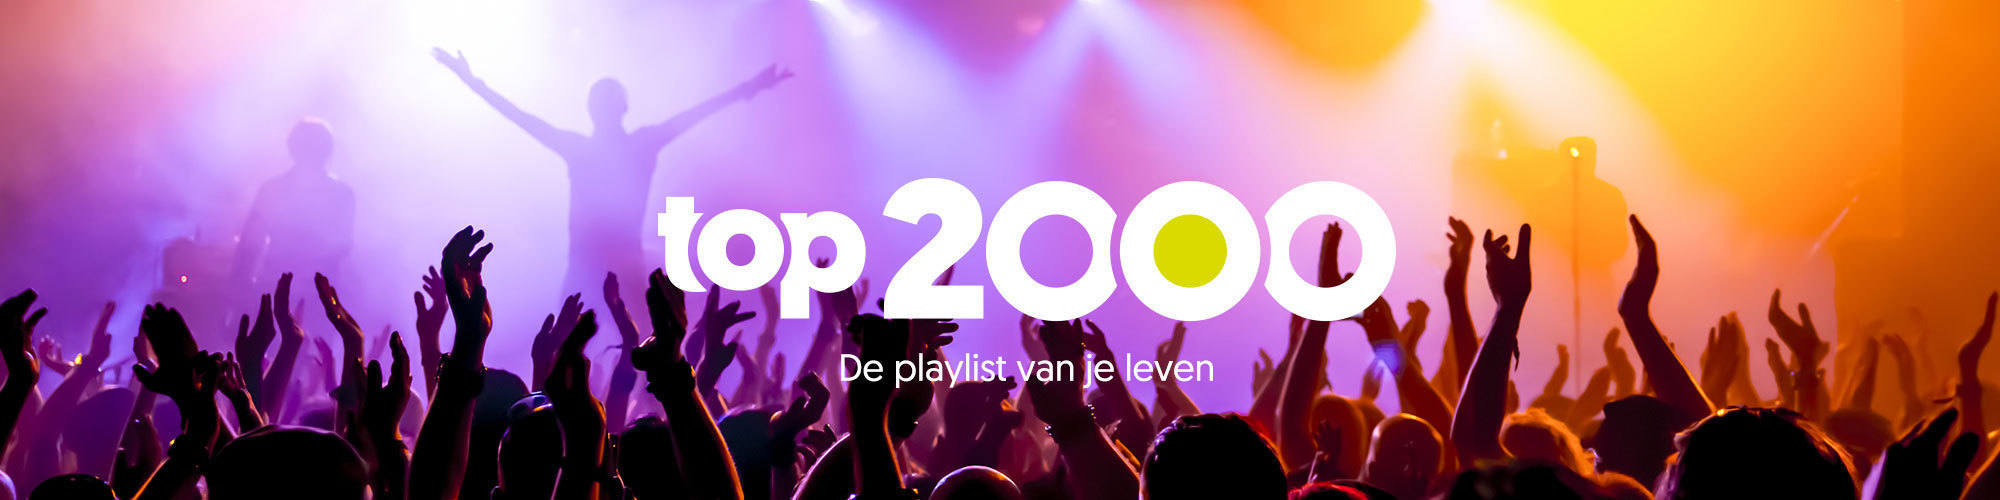 Joe carrousel top2000 finaal playlistvanjeleven 4